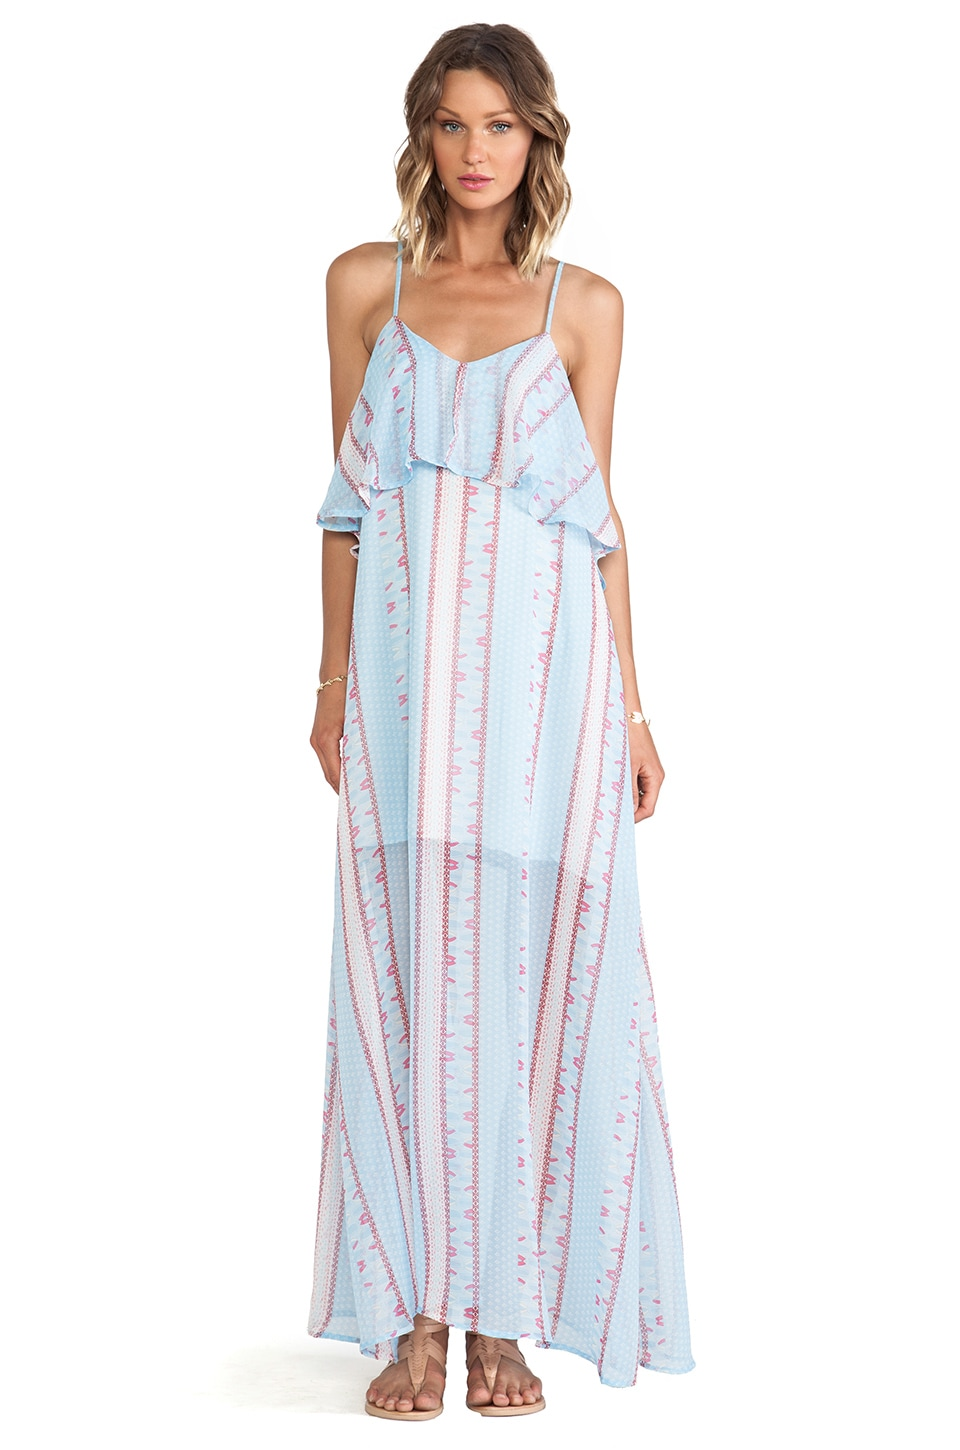 Lucca Couture Maxi Tank Dress in Blue